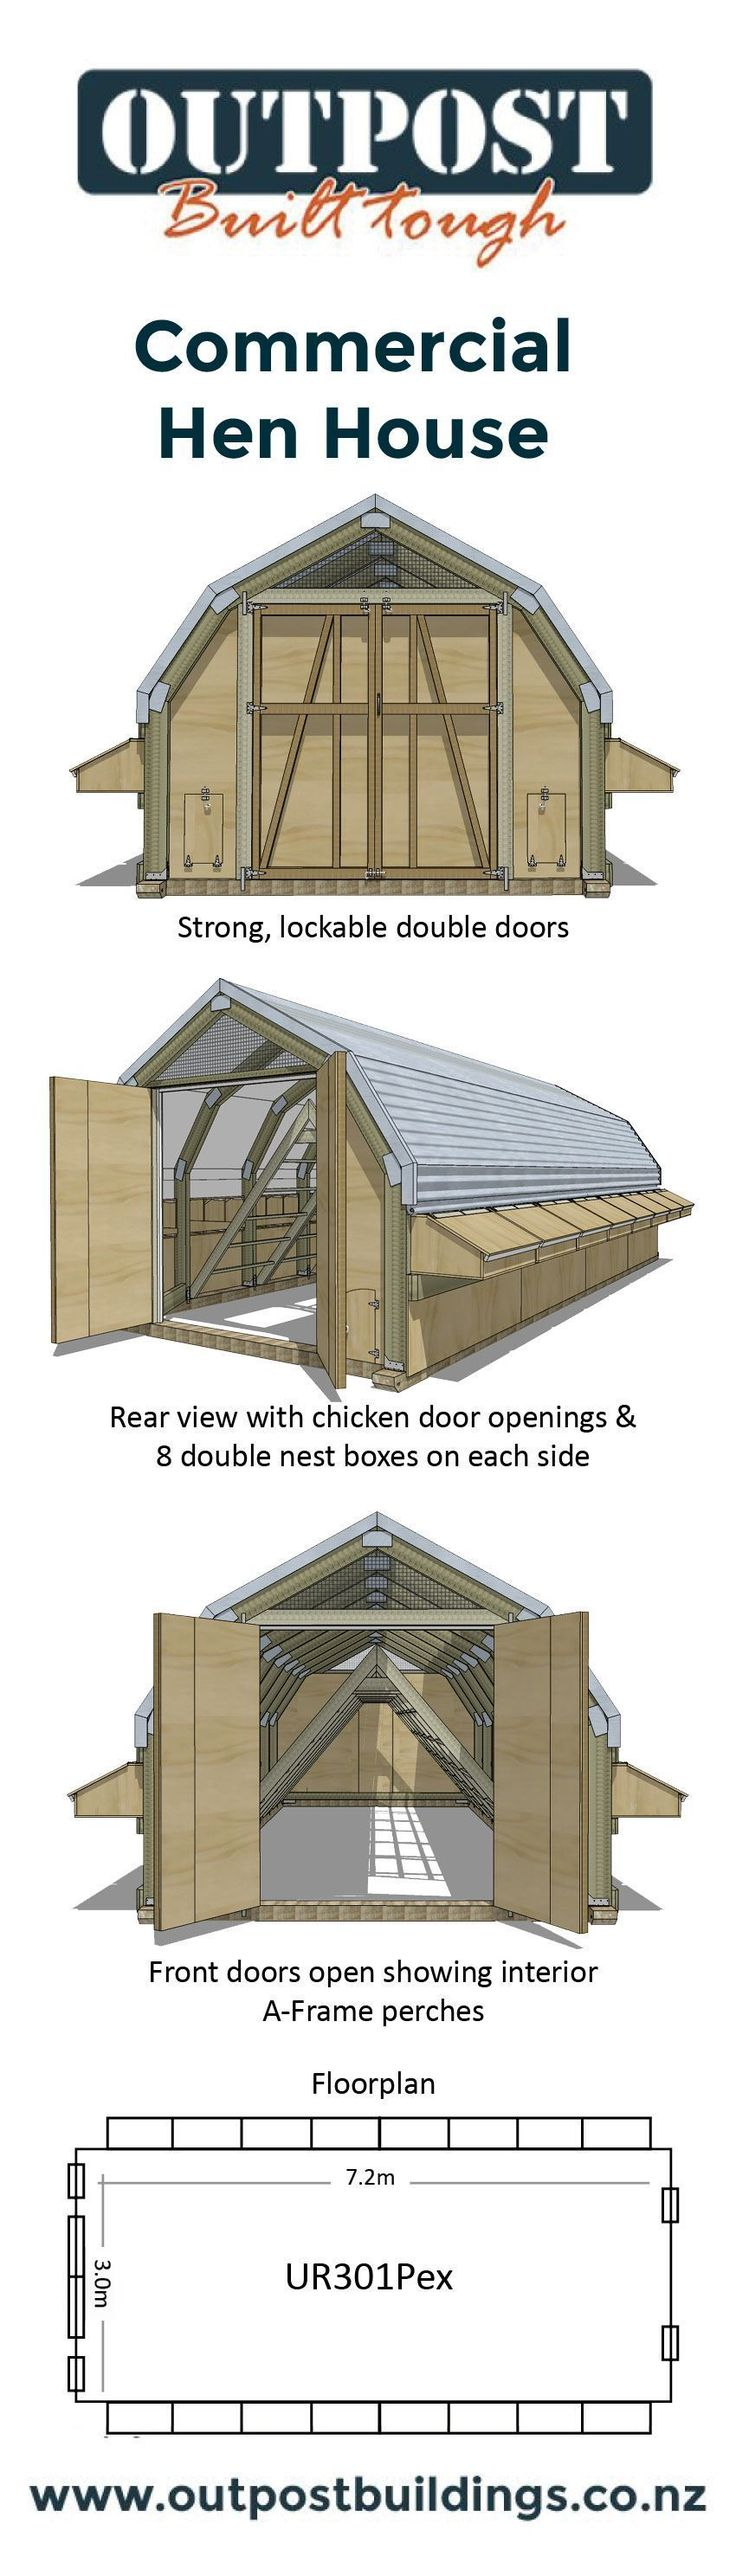 Large Chicken Coop suitable for up to 180 free ranging hens! #freerangechickens